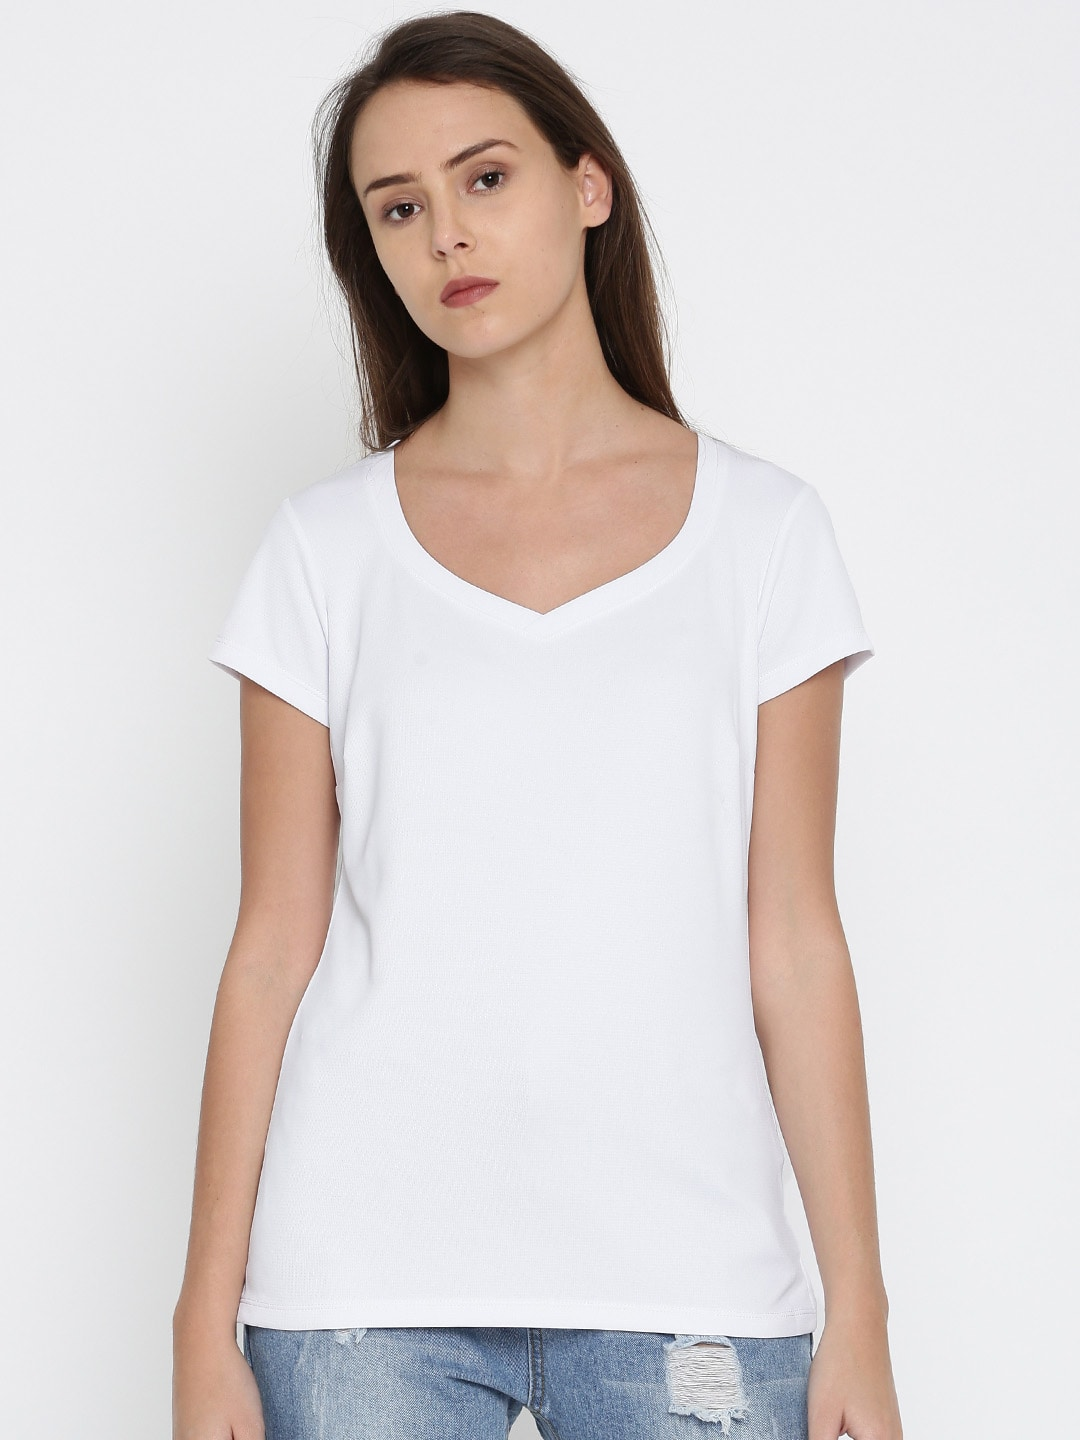 Columbia Women White Solid V-Neck T-shirt image